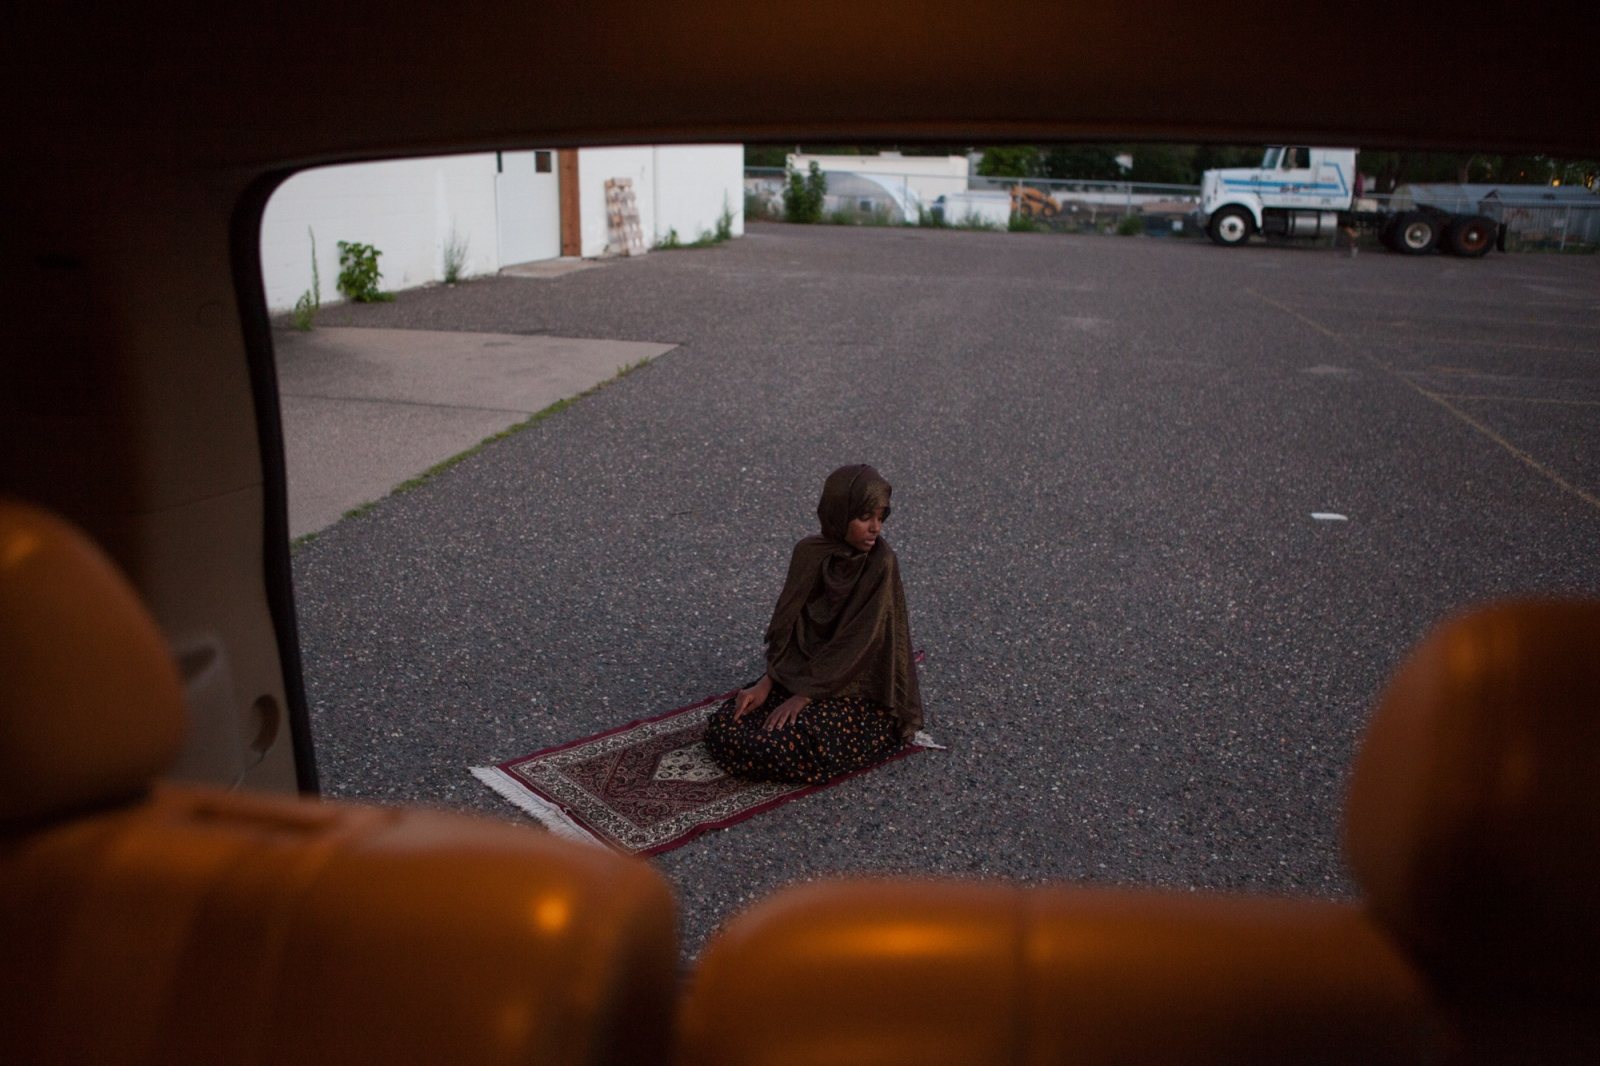 Fartun Mahamoud Abdi prays in the parking lot of a building where she will be opening a new day care center catering to Somali children in a suburb of Minneapolis. Ms. Abdi is also currently earning her PhD in radicalization studies, focusing her research on the Somali community in Minneapolis.